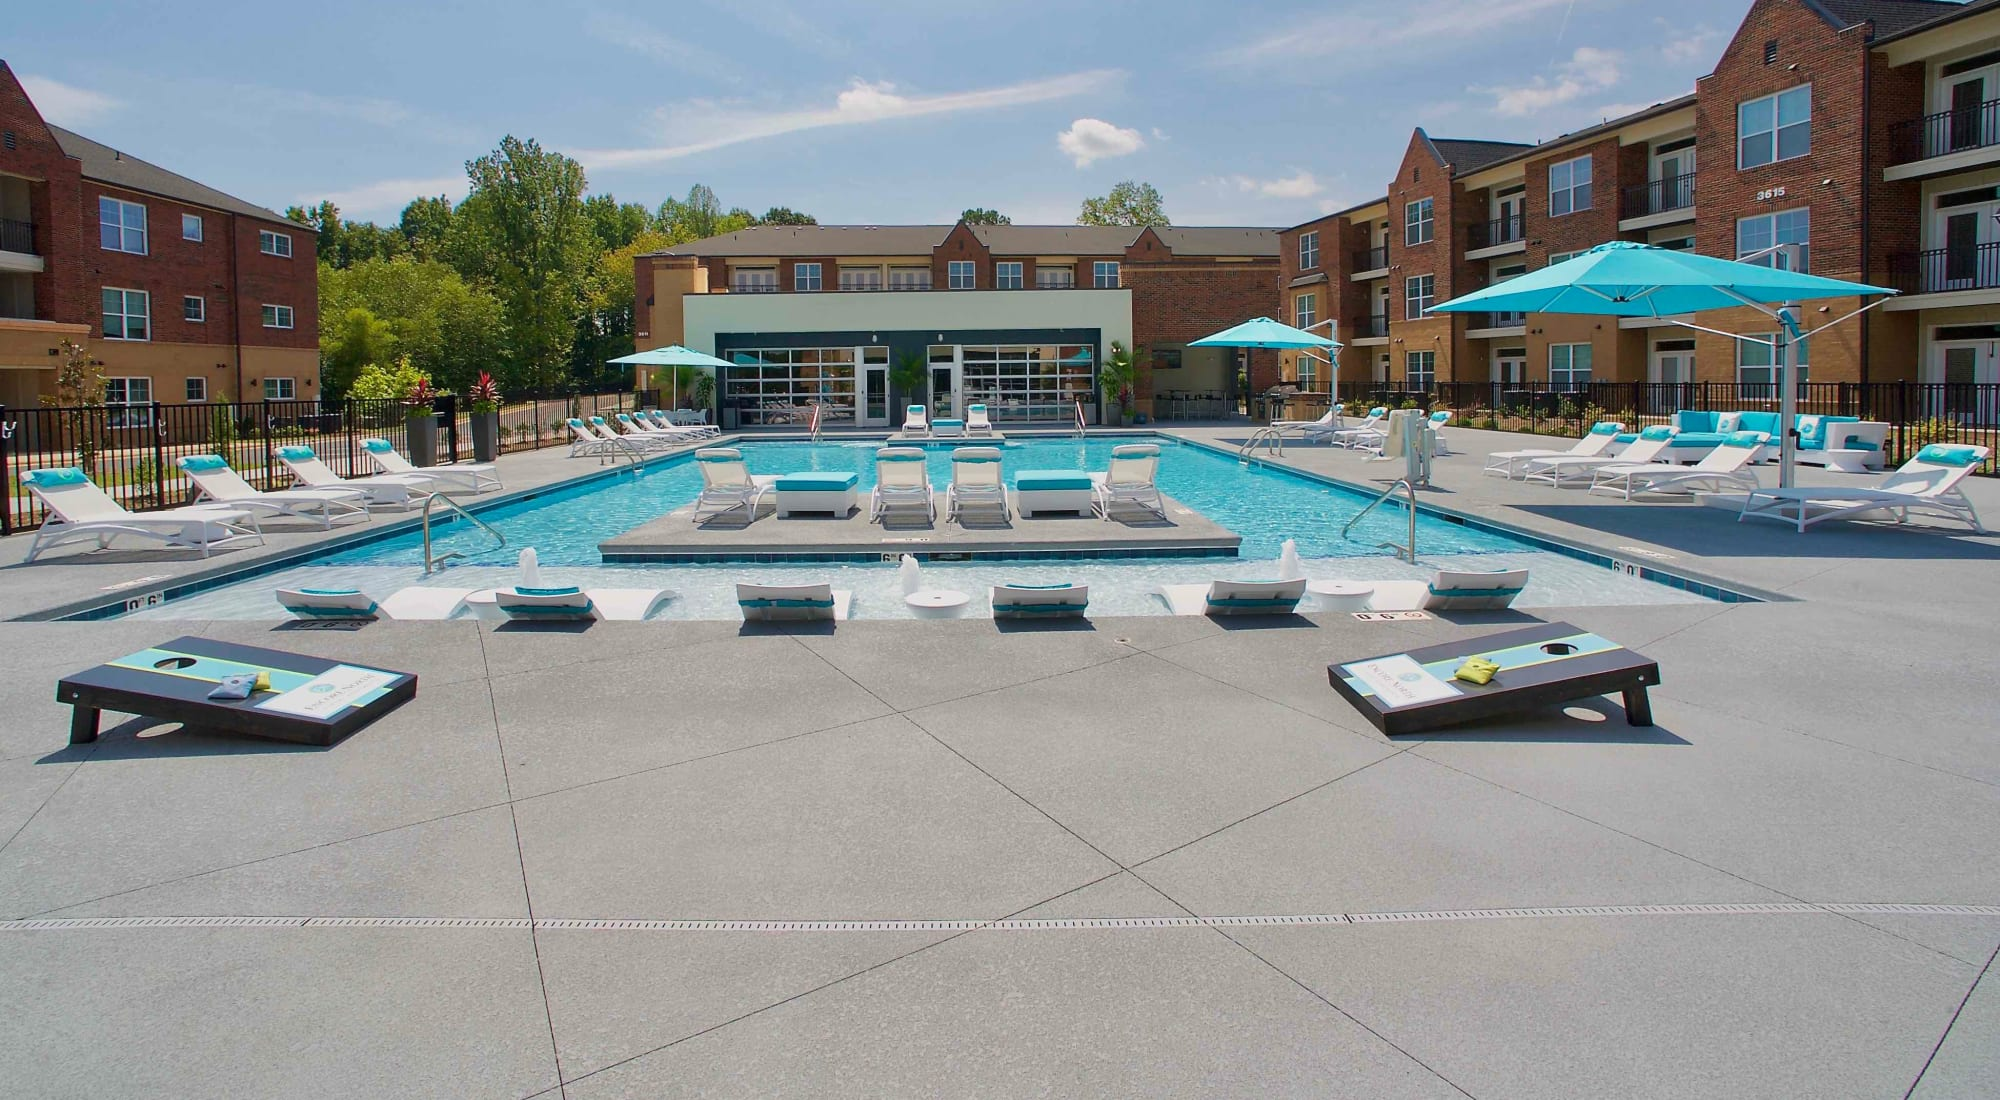 Apartments at Encore North in Greensboro, North Carolina